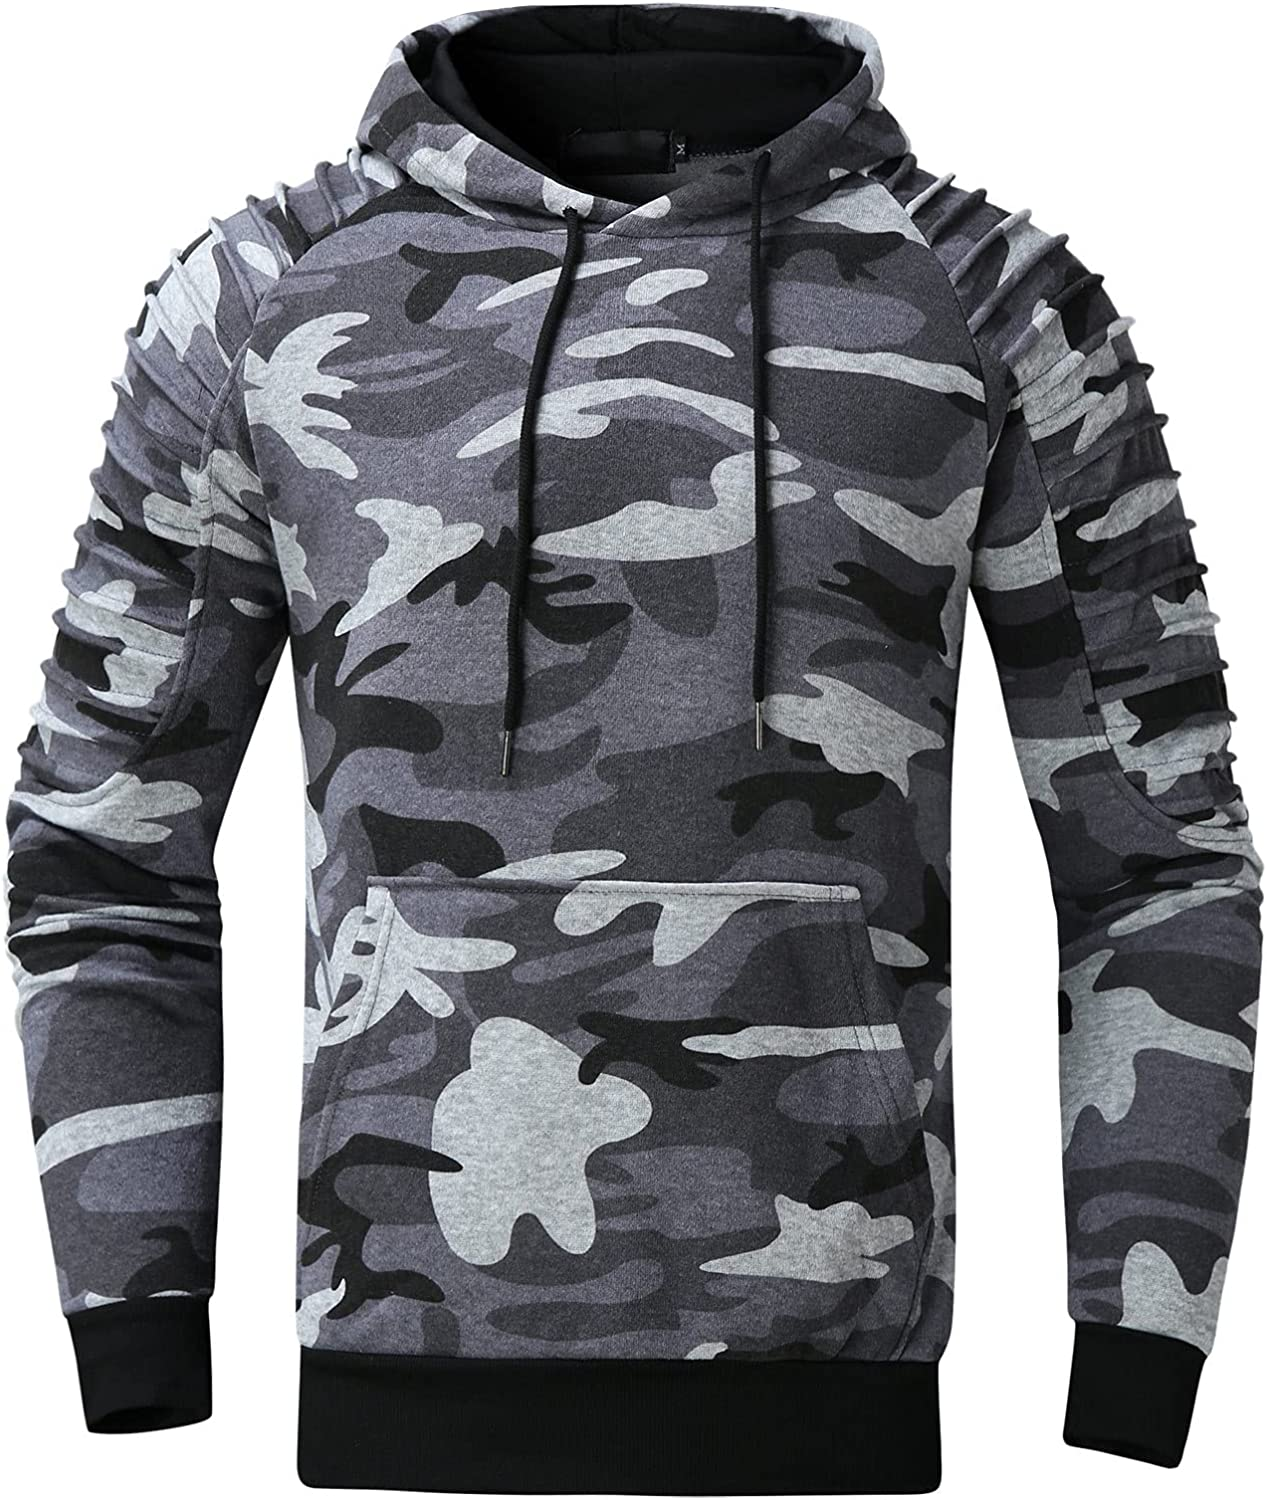 HONGJ Camo Hooded Sweatshirts for Mens, Pleated Shoulder Camouflage Drawstring Pullover Workout Sports Fitness Hoodies